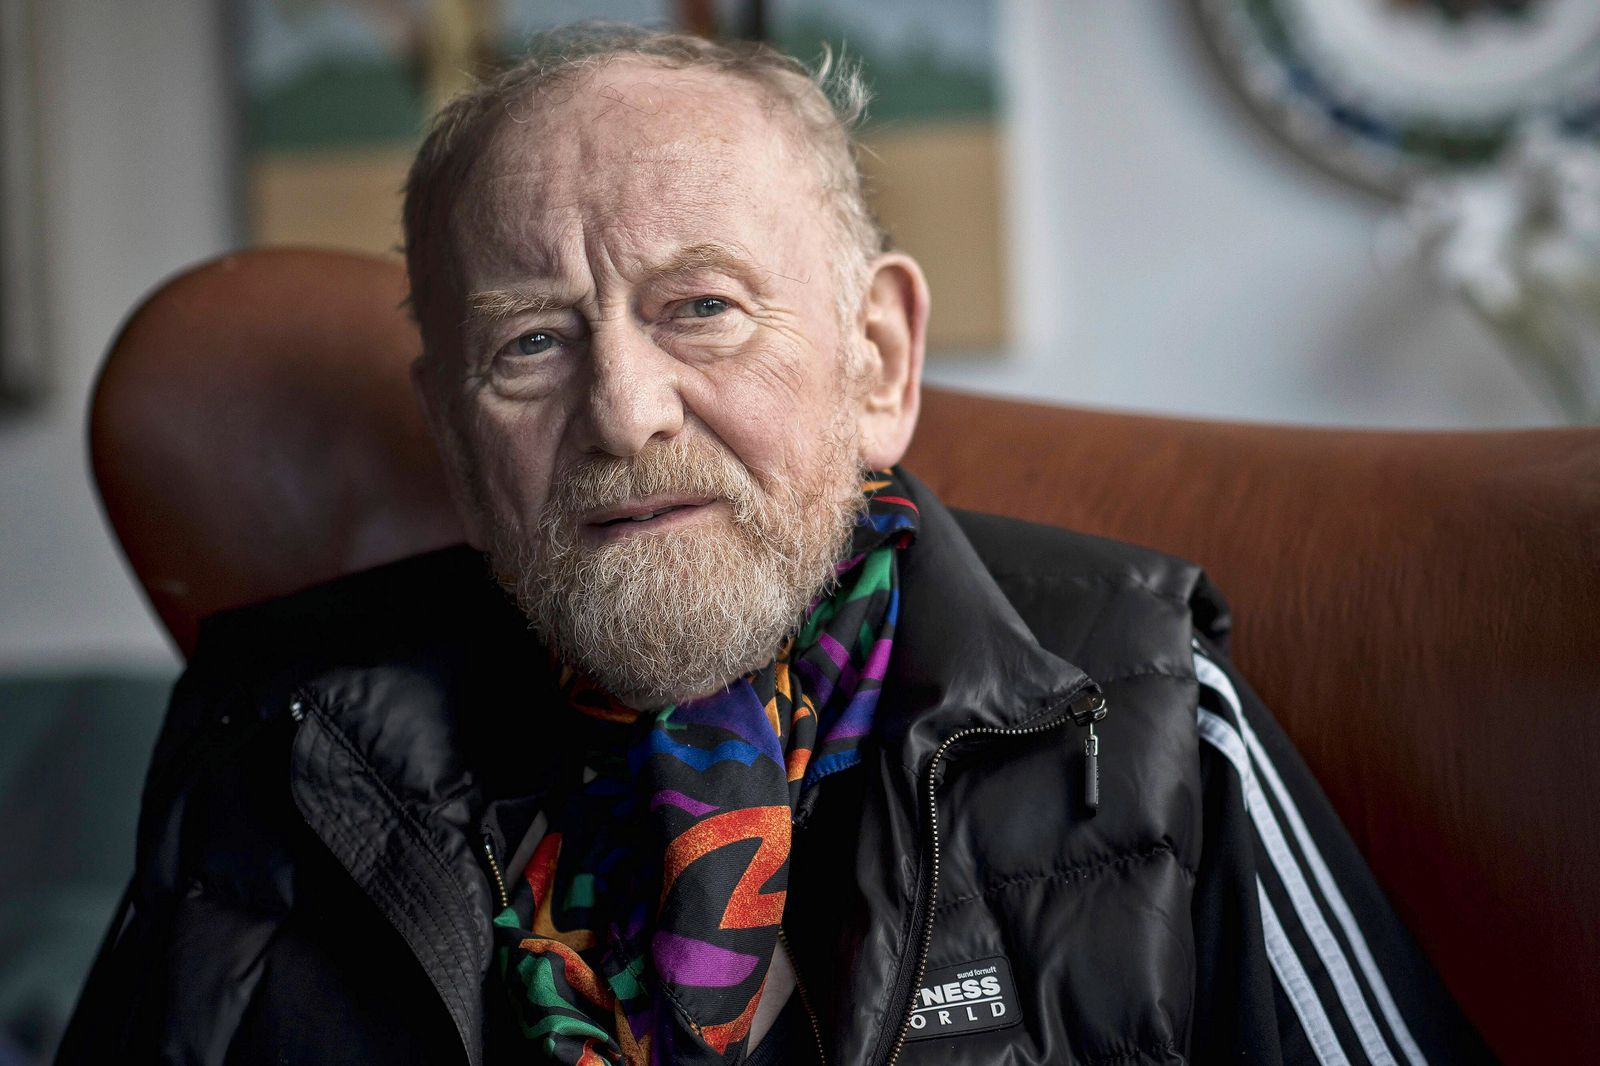 - VIBY, DENMARK: Danish cartoonist Kurt Westergaard poses for the photographer in his house in Viby J., near Aarhus, De